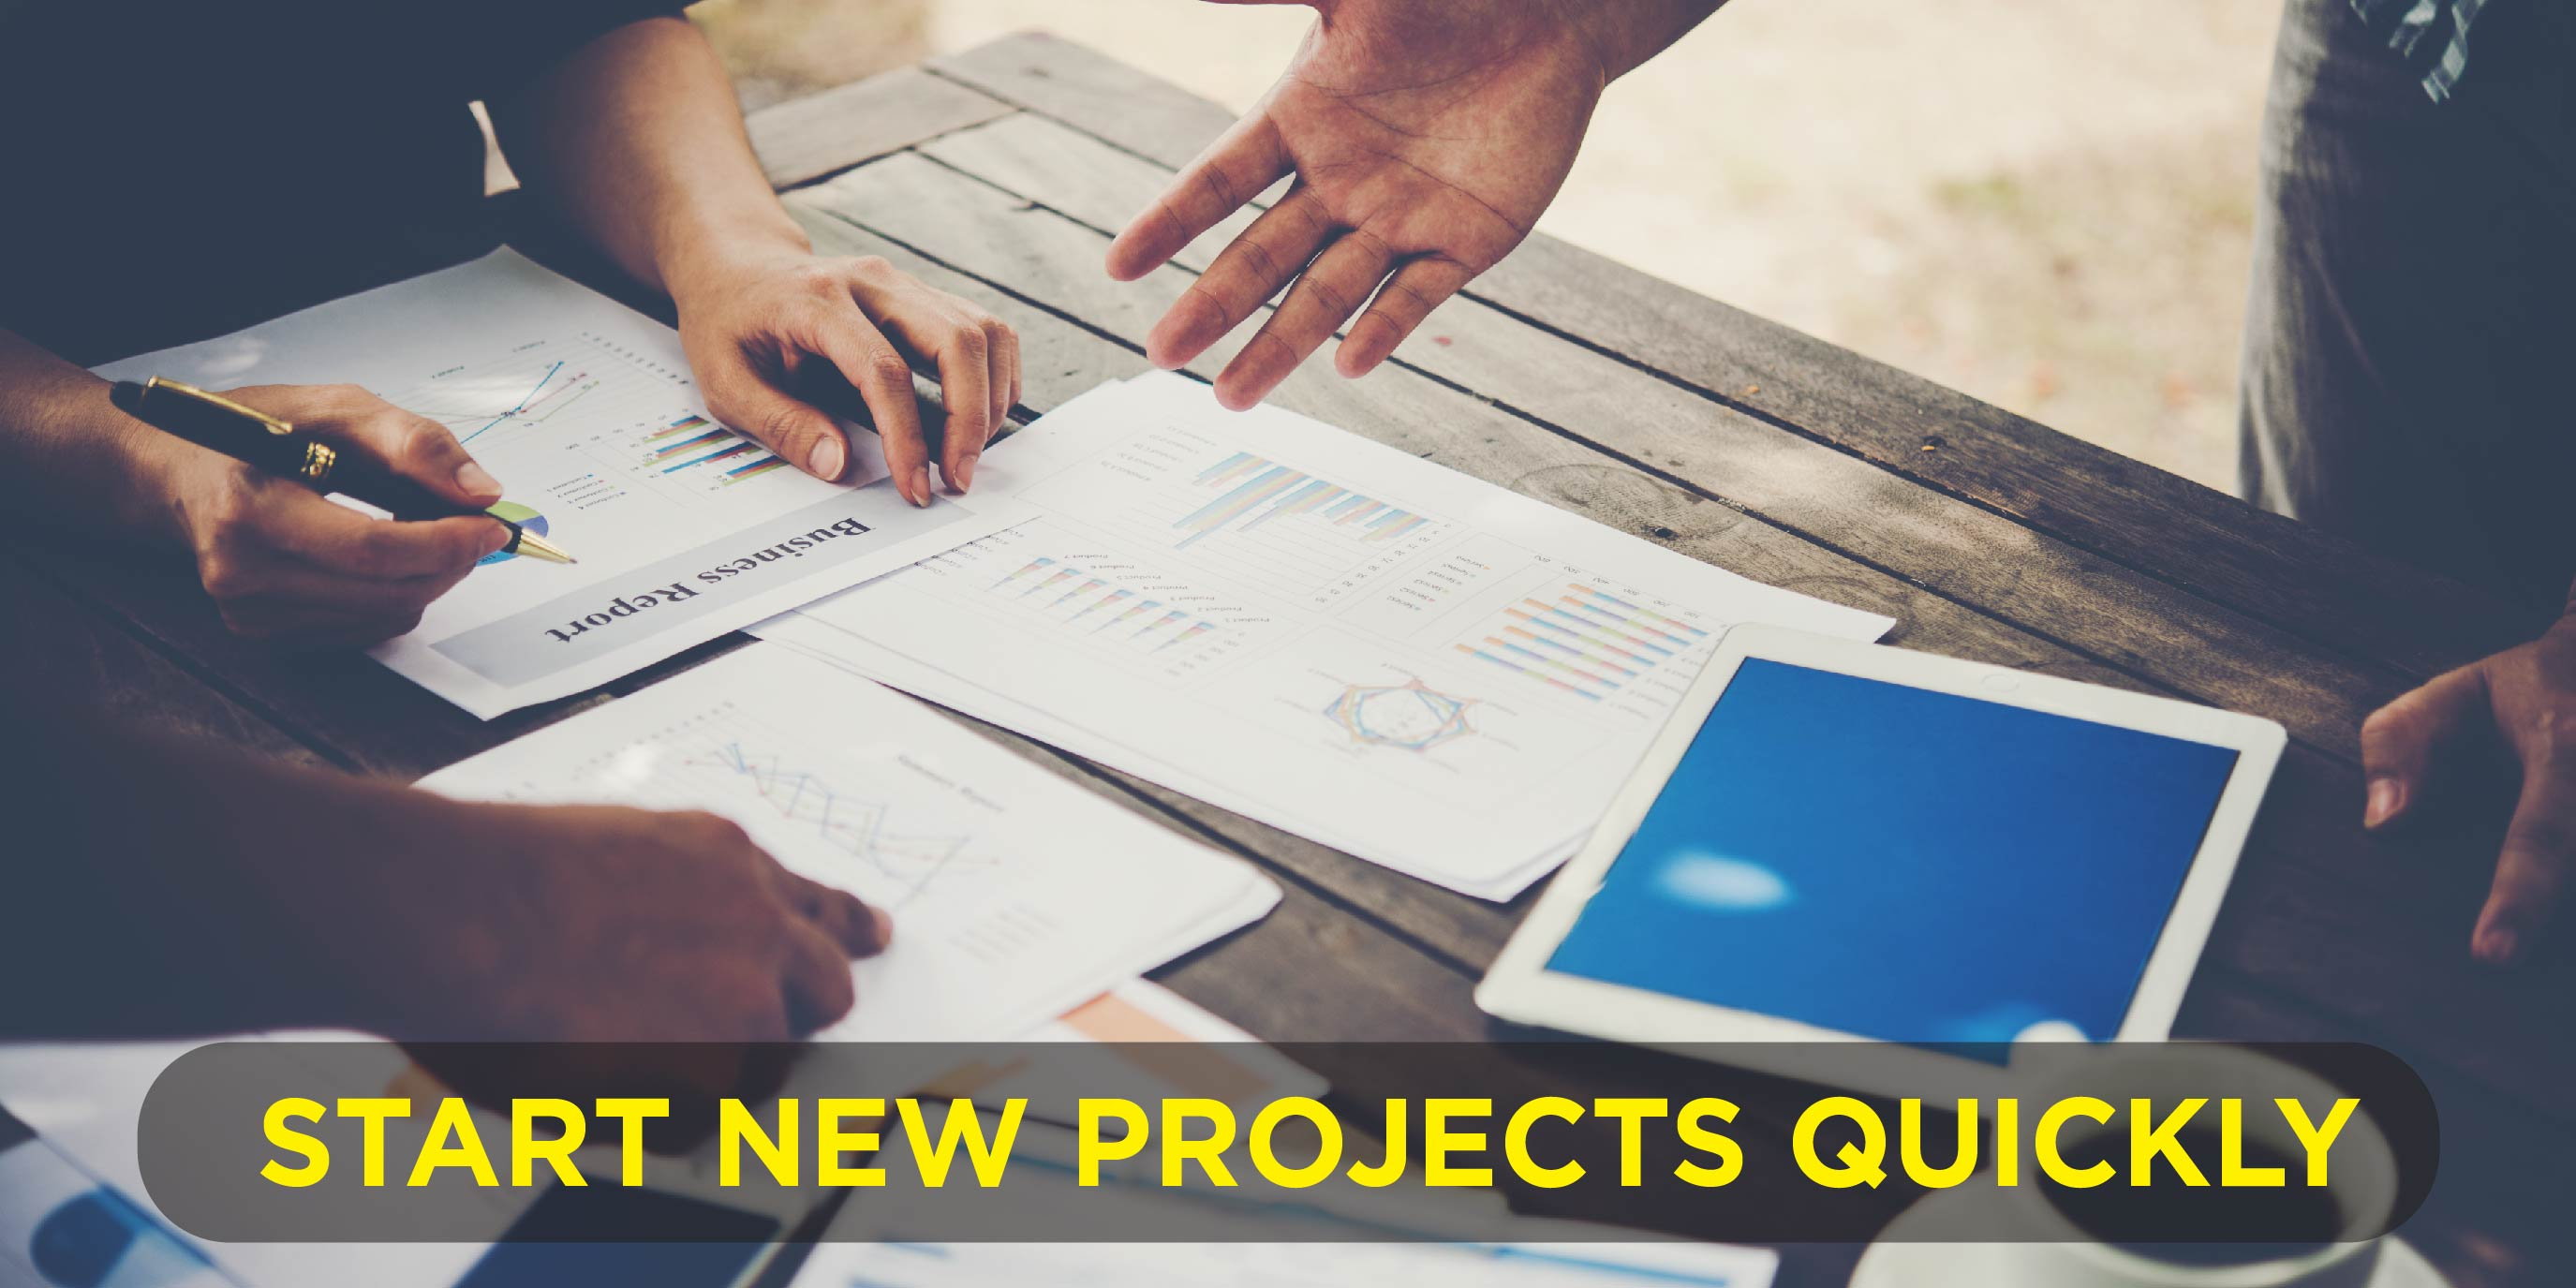 Start New Projects Quickly 01